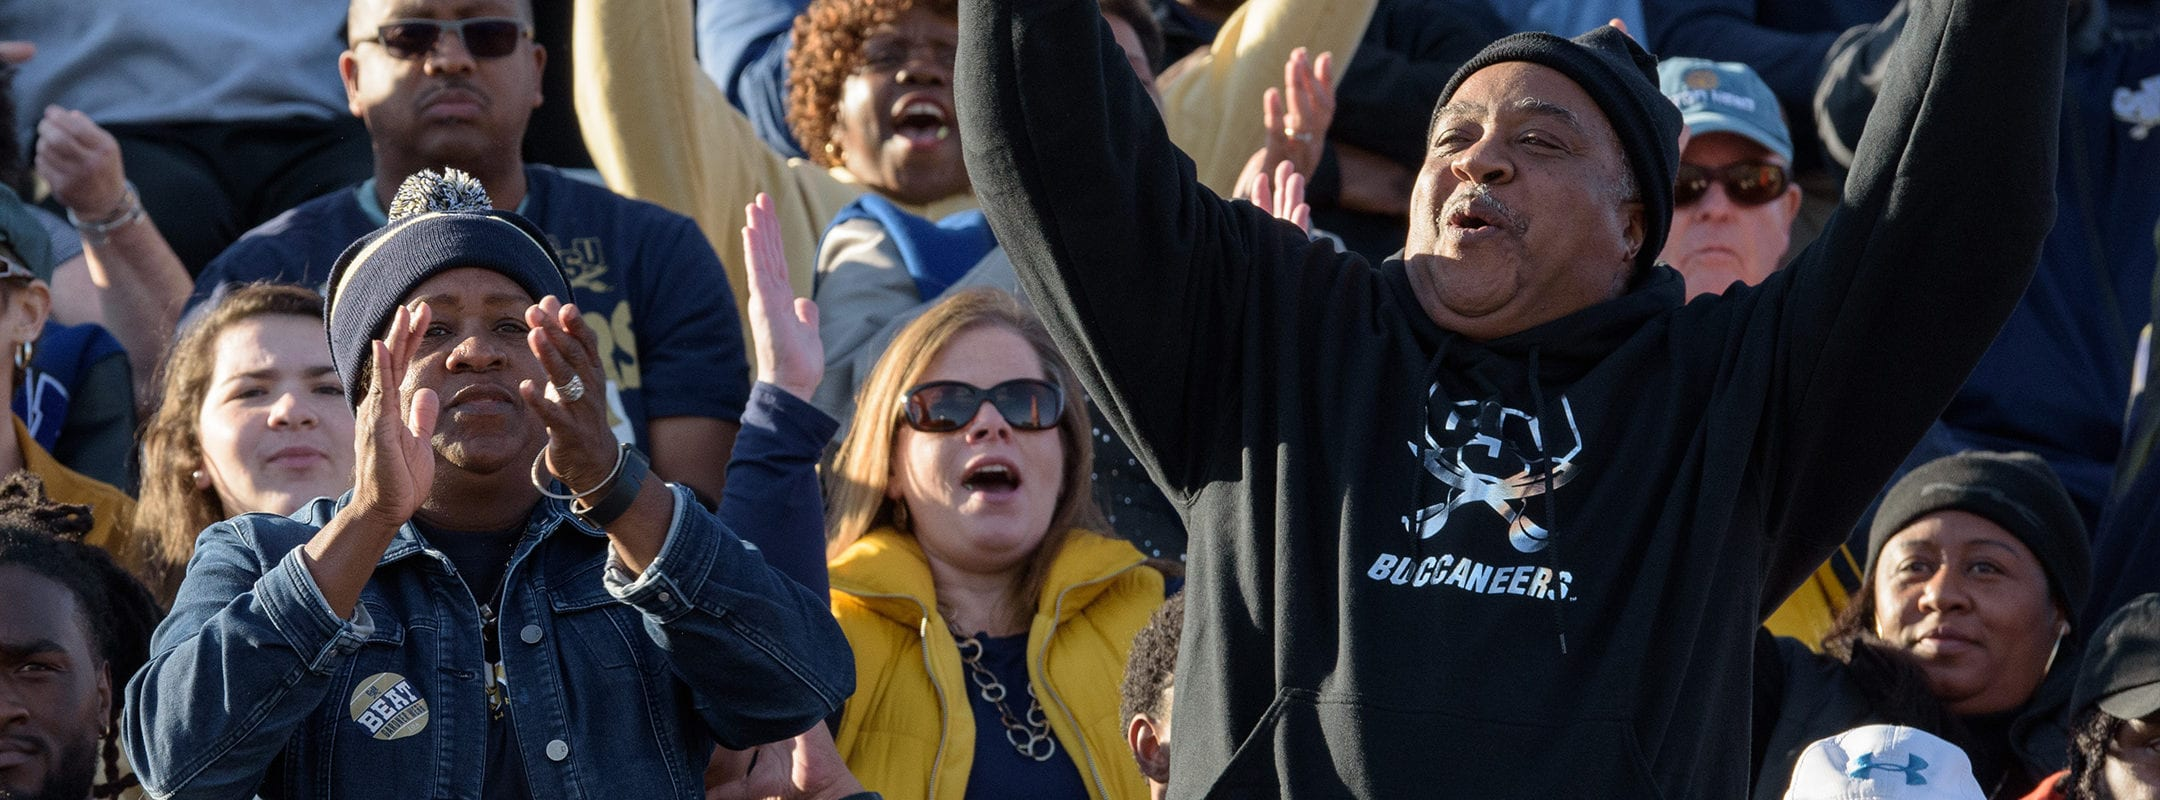 CSU alumni and parents of students cheering in the stands at a football game.